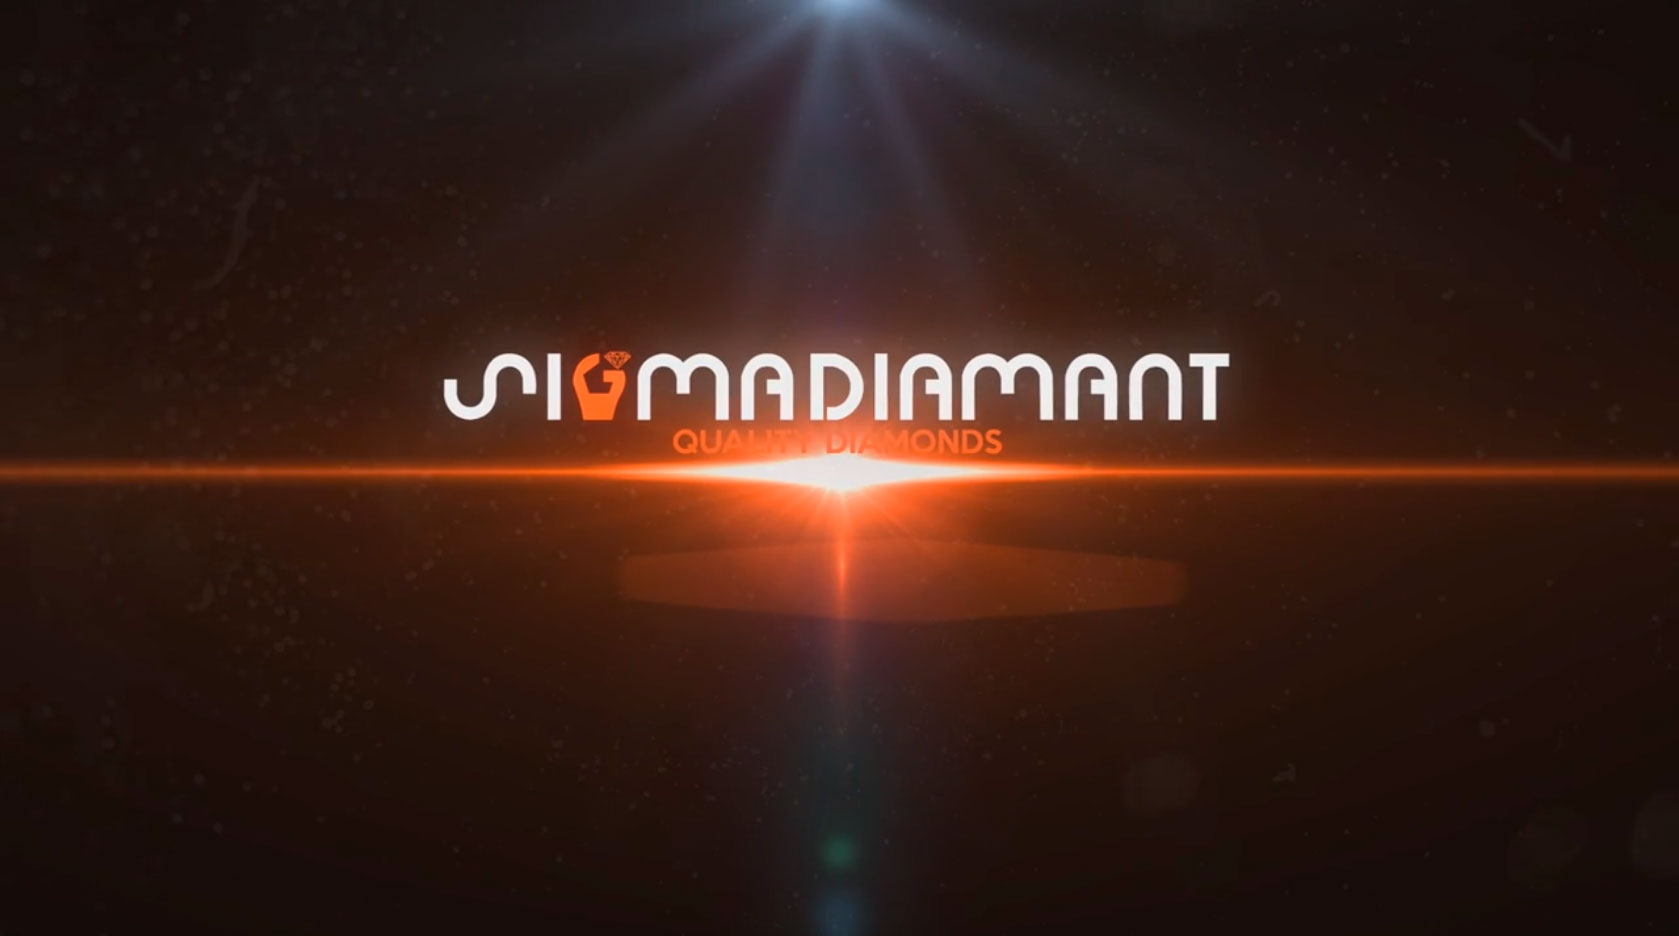 https://www.sigmadiamant.com/wp-content/uploads/2018/04/cover-image.jpg